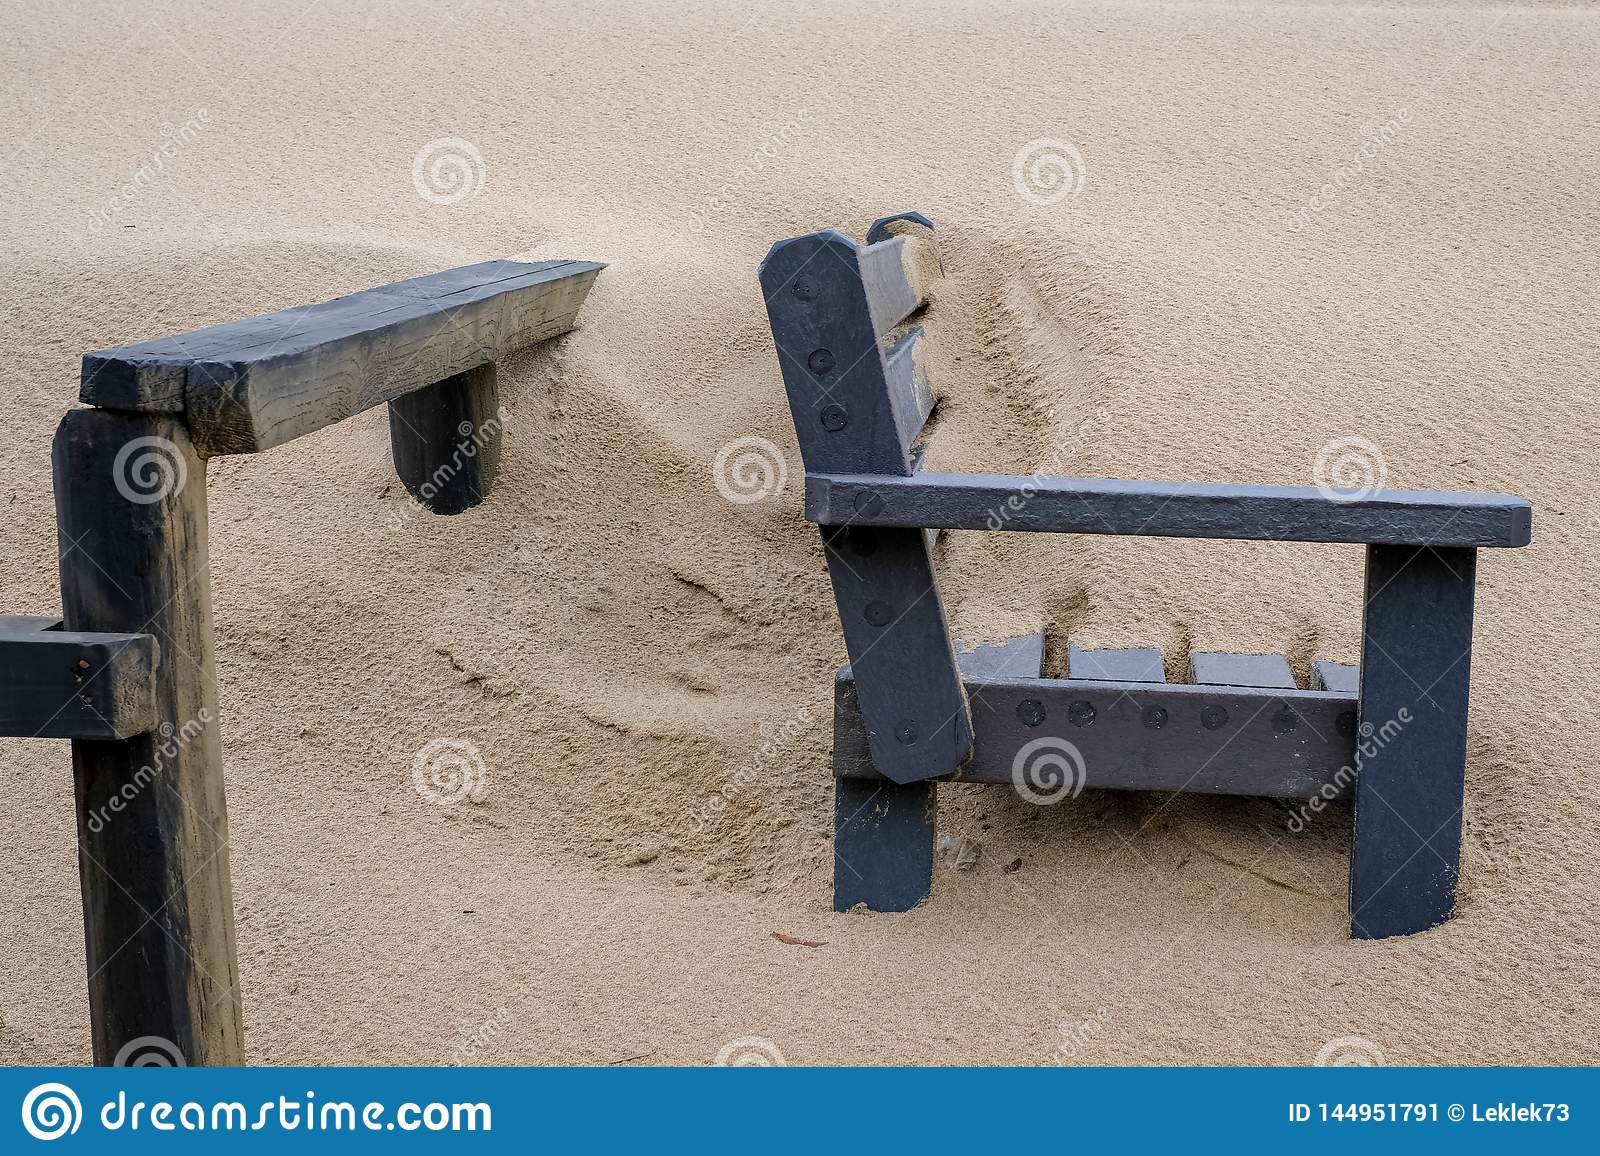 Strange Wooden Bench Covered In Sand On The Beach At Boggams Bay On Beatyapartments Chair Design Images Beatyapartmentscom